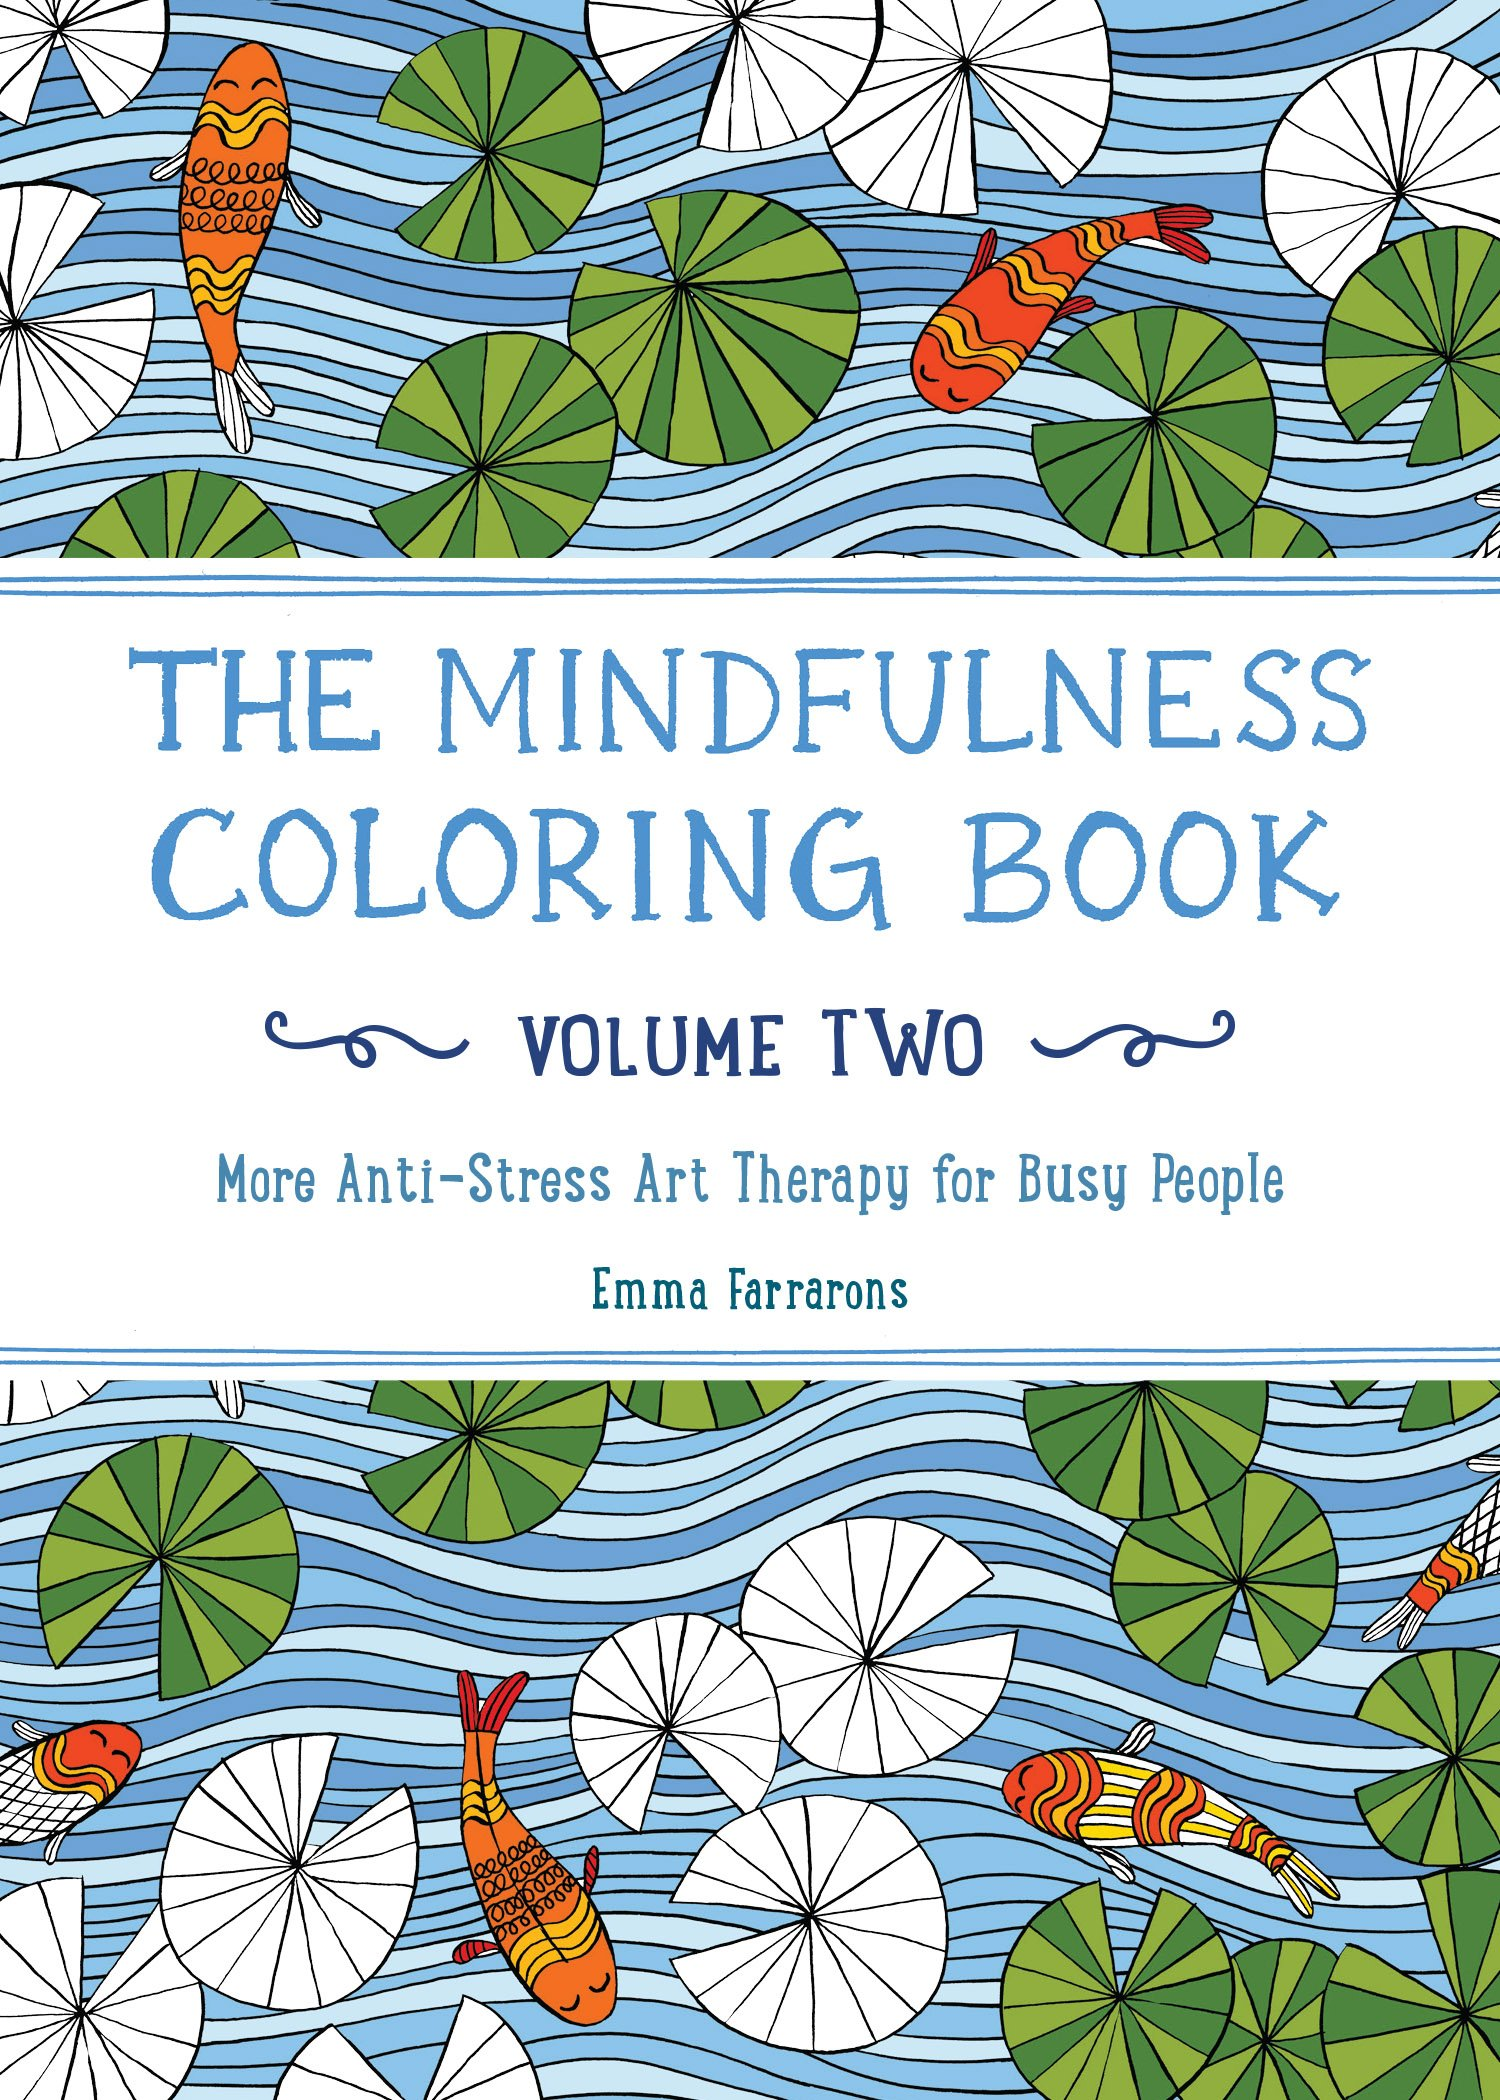 Stress coloring books - The Mindfulness Coloring Book Volume Two More Anti Stress Art Therapy For Busy People The Mindfulness Coloring Series Emma Farrarons 9781615193028